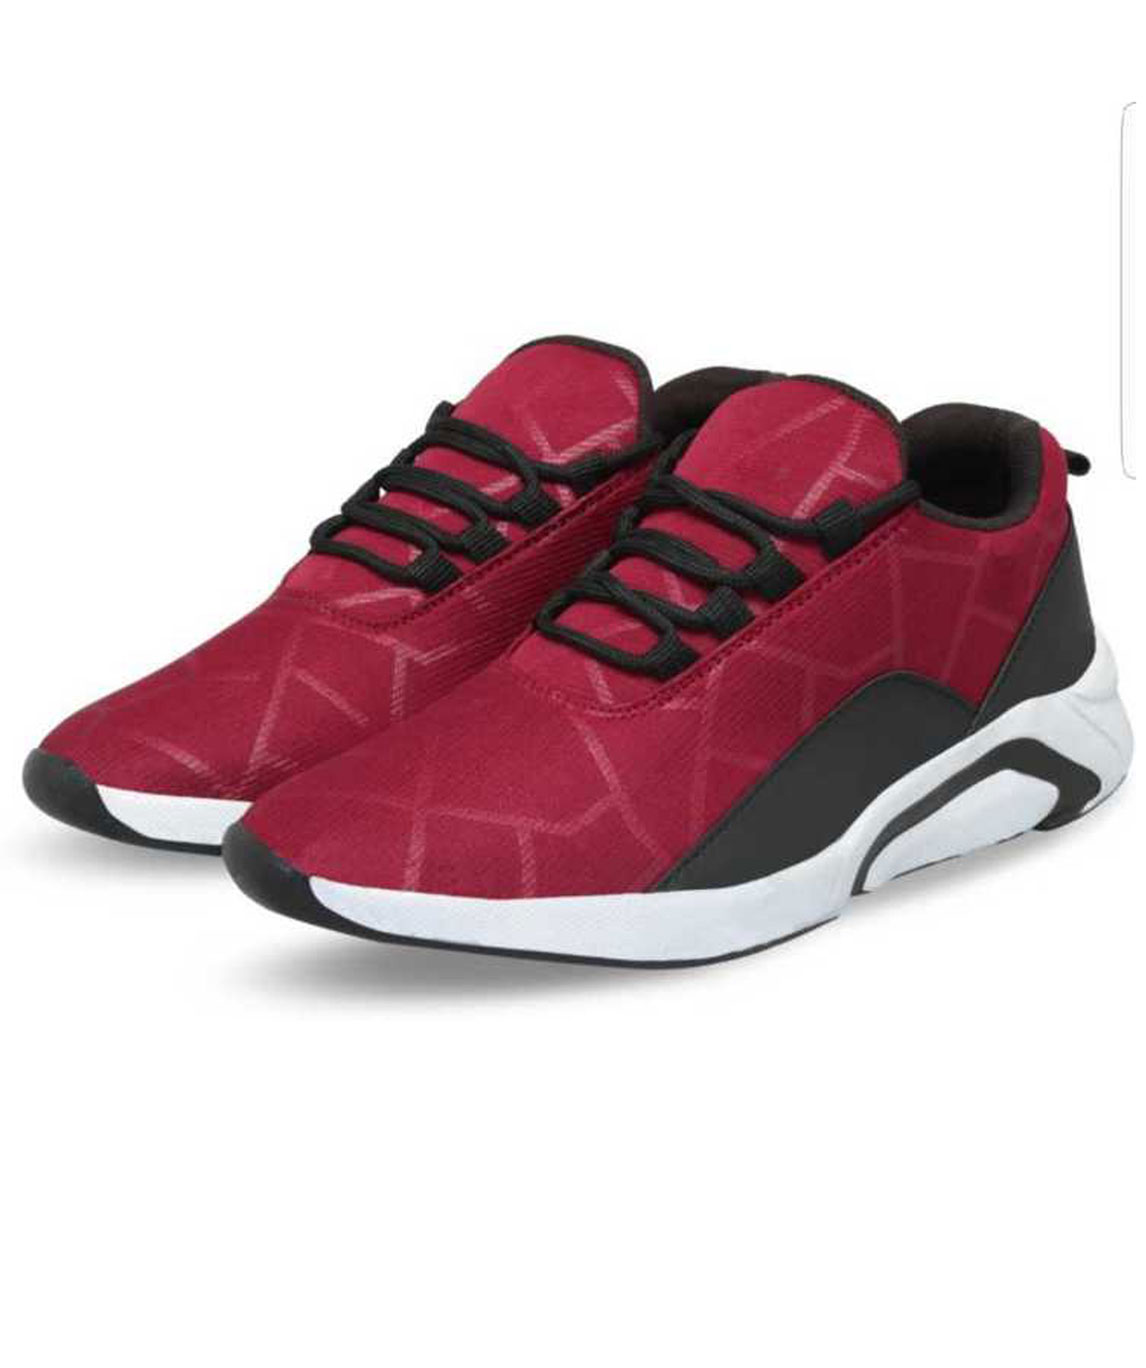 STAR SPORTS SNEAKERS OUTDOORS FOR MEN (WHITE, MAROON)